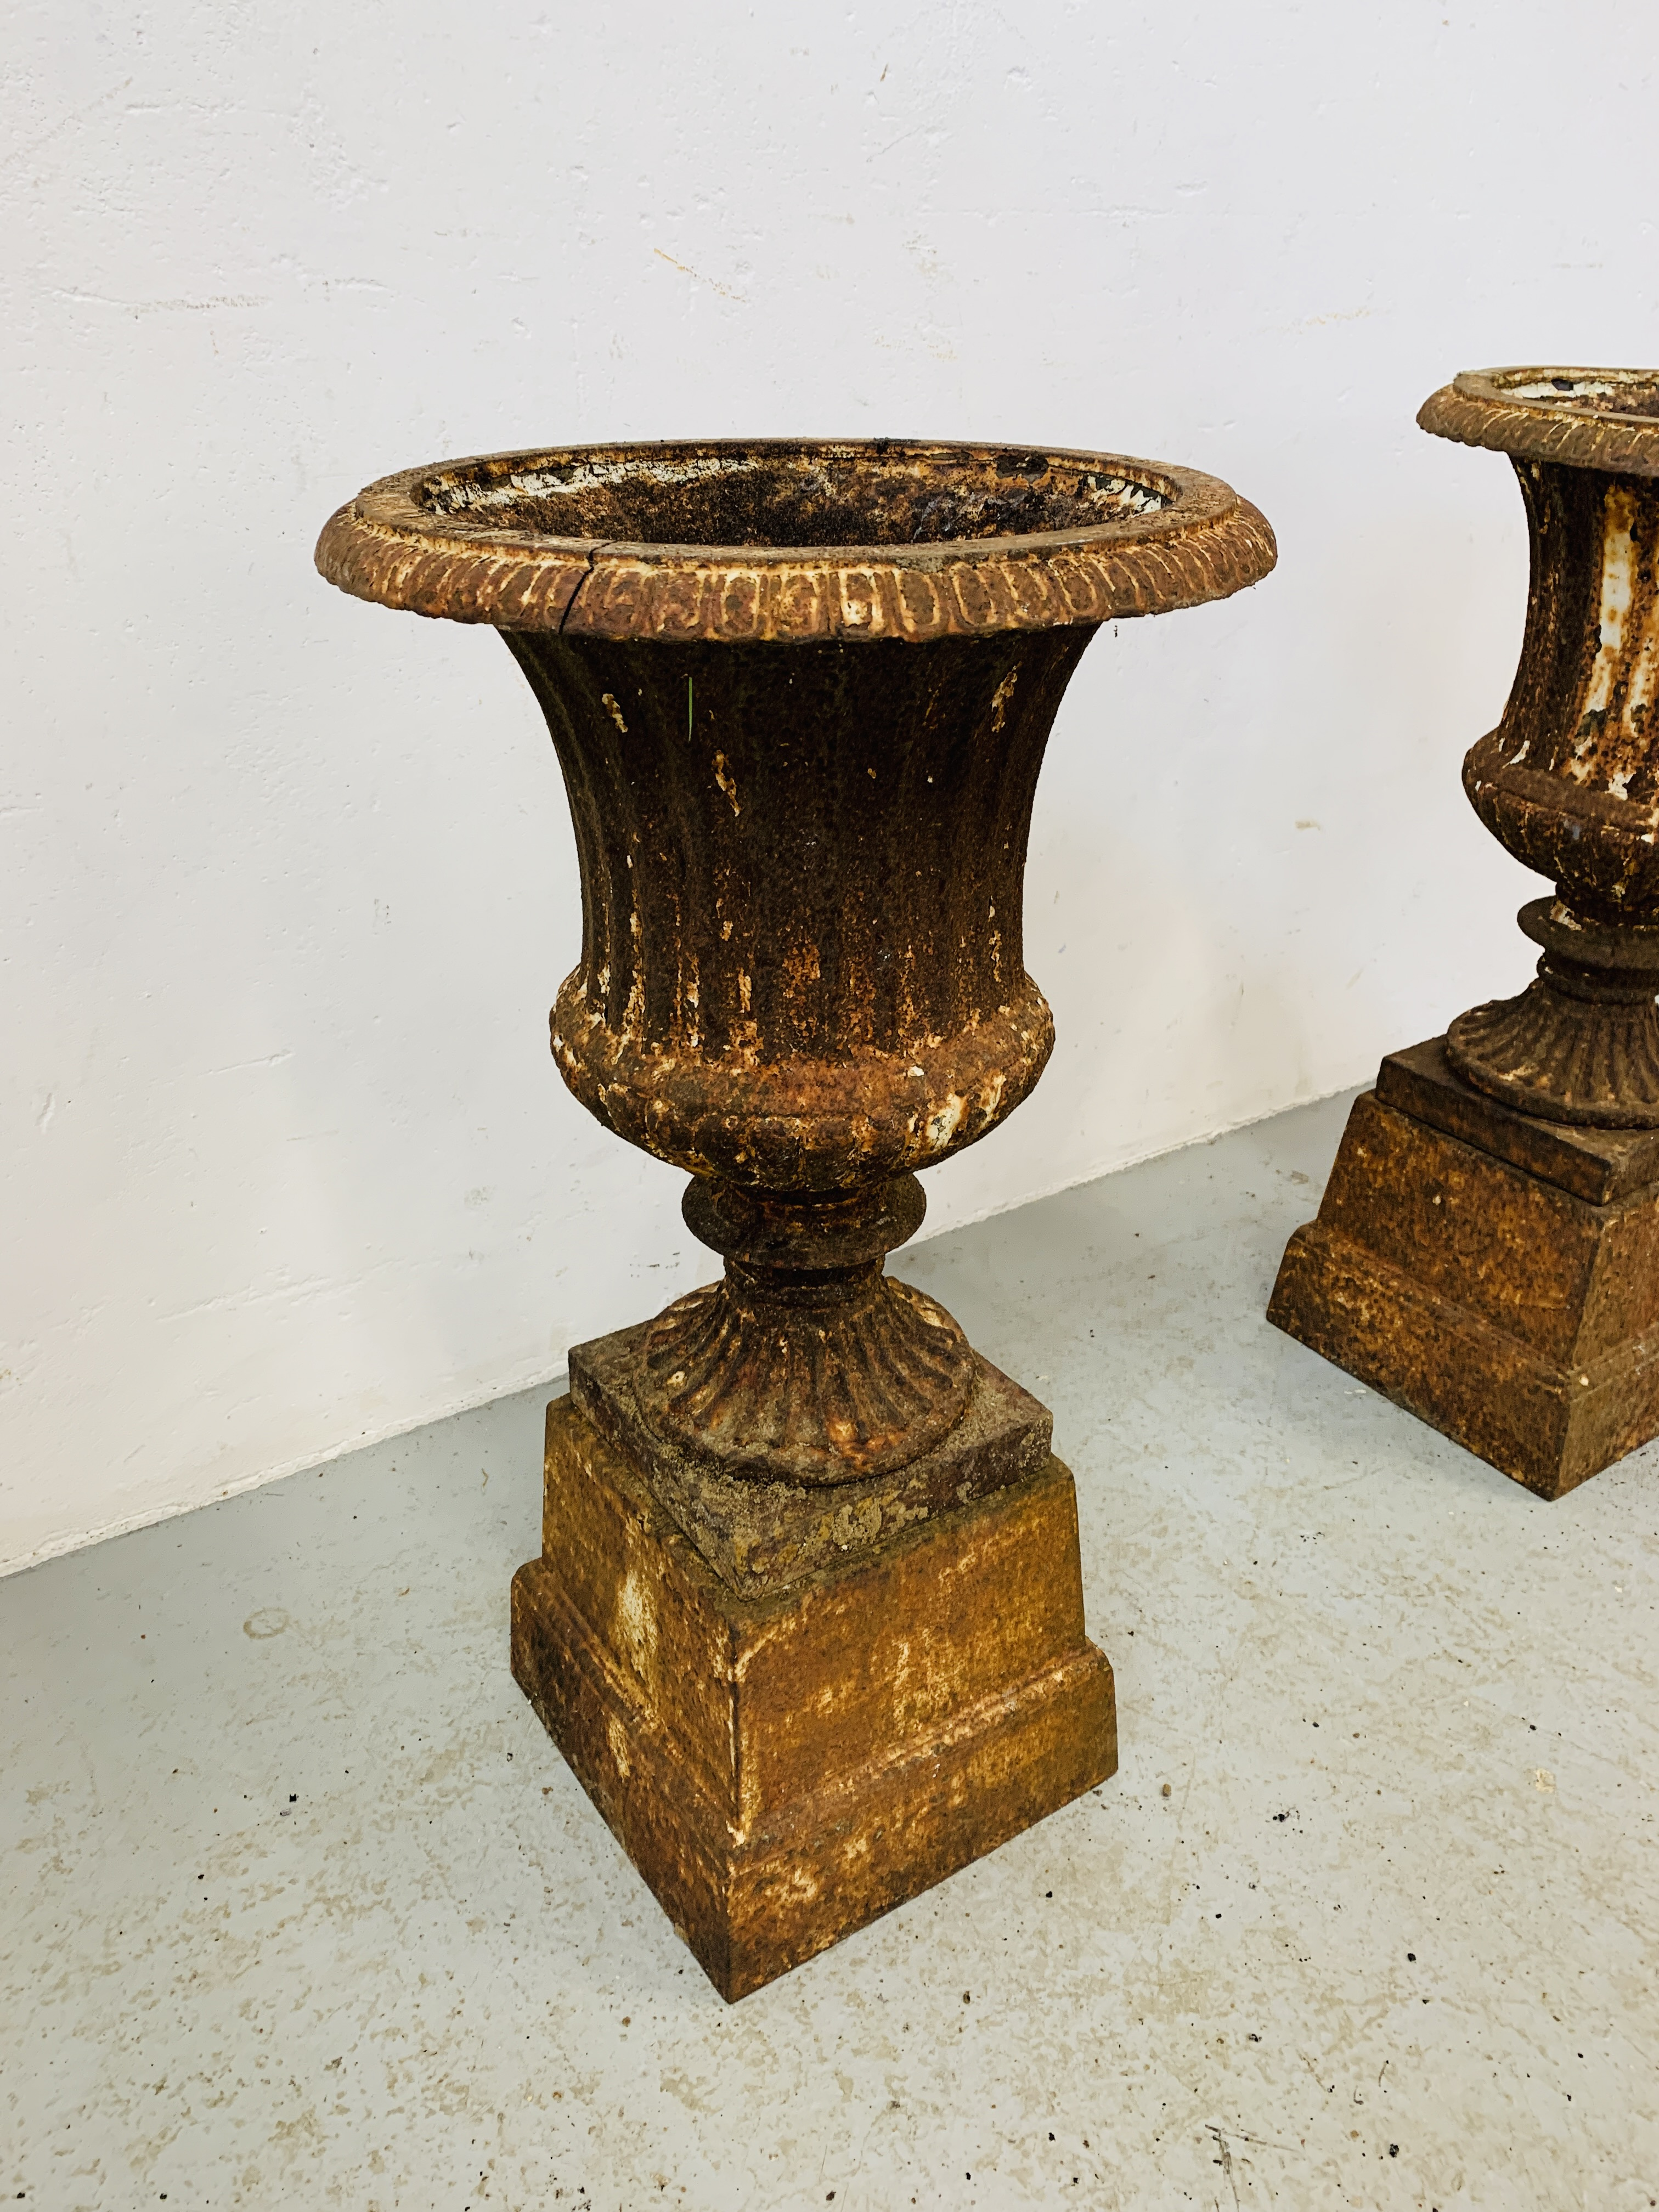 A PAIR OF CAST IRON TULIP SHAPE GARDEN URNS ON STANDS A/F CONDITION - OVERALL HEIGHT 68CM. - Image 4 of 13